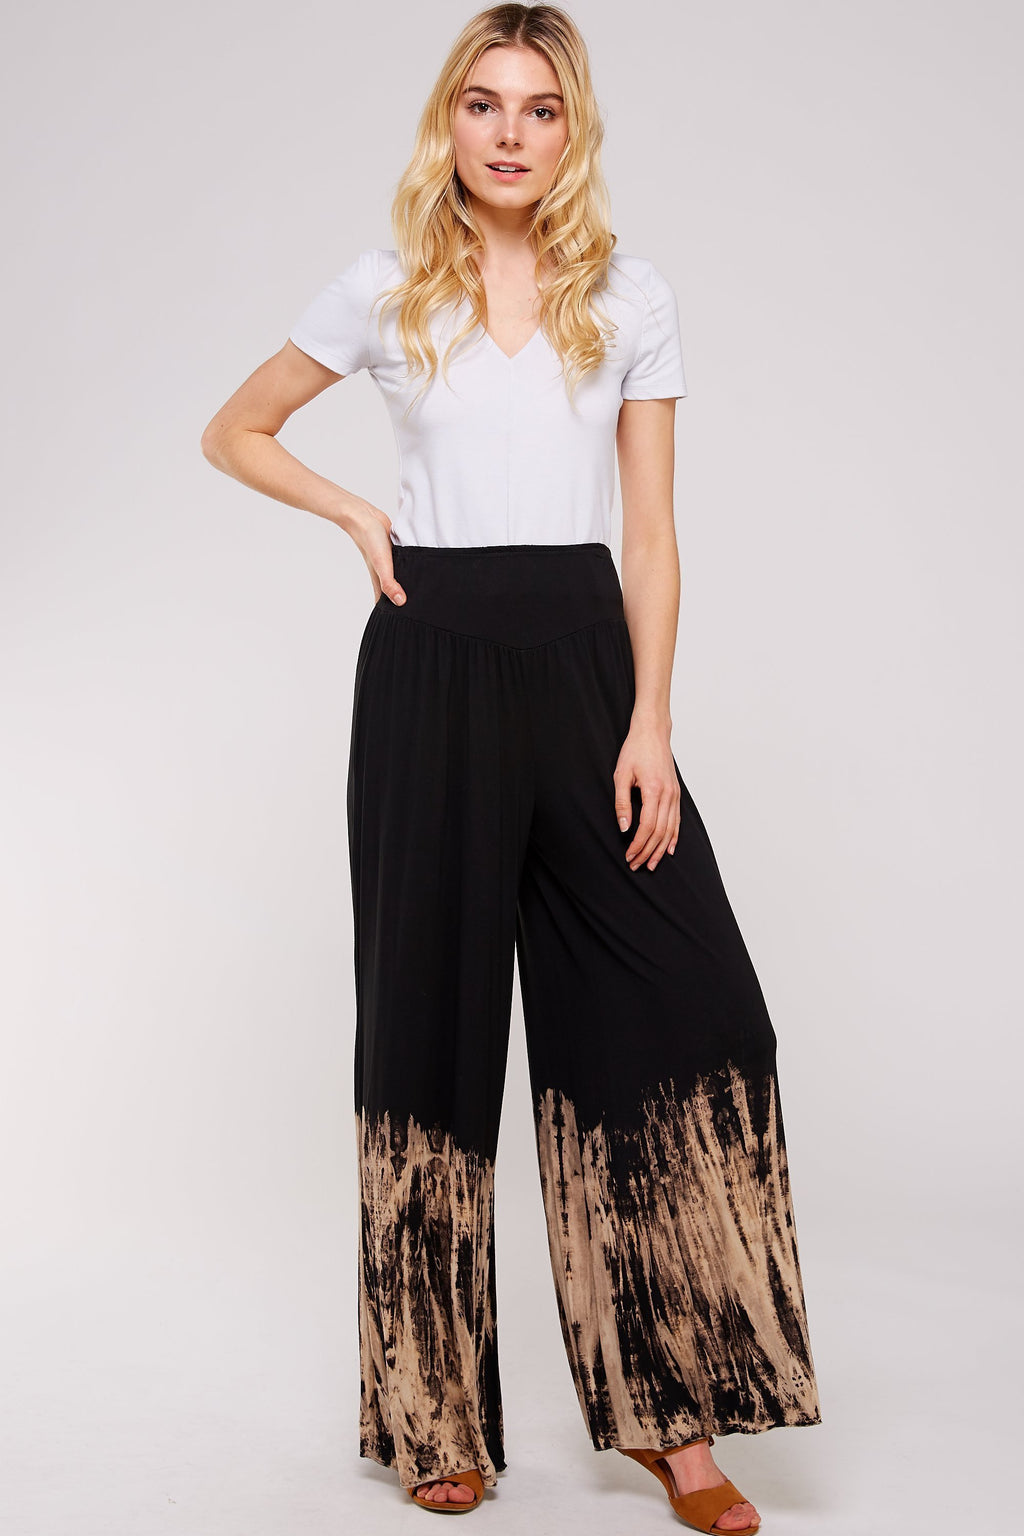 Wholesale Clothing, Online Wholesale Clothing, Women Clothing, Bohemian, Free People, tiedye, specialty wash, wholesale seller, wholesale women clothing shop, gypsy look, USA made, URBAN X APPAREL-PANTS-UPR3103BM, fashiontrend2019